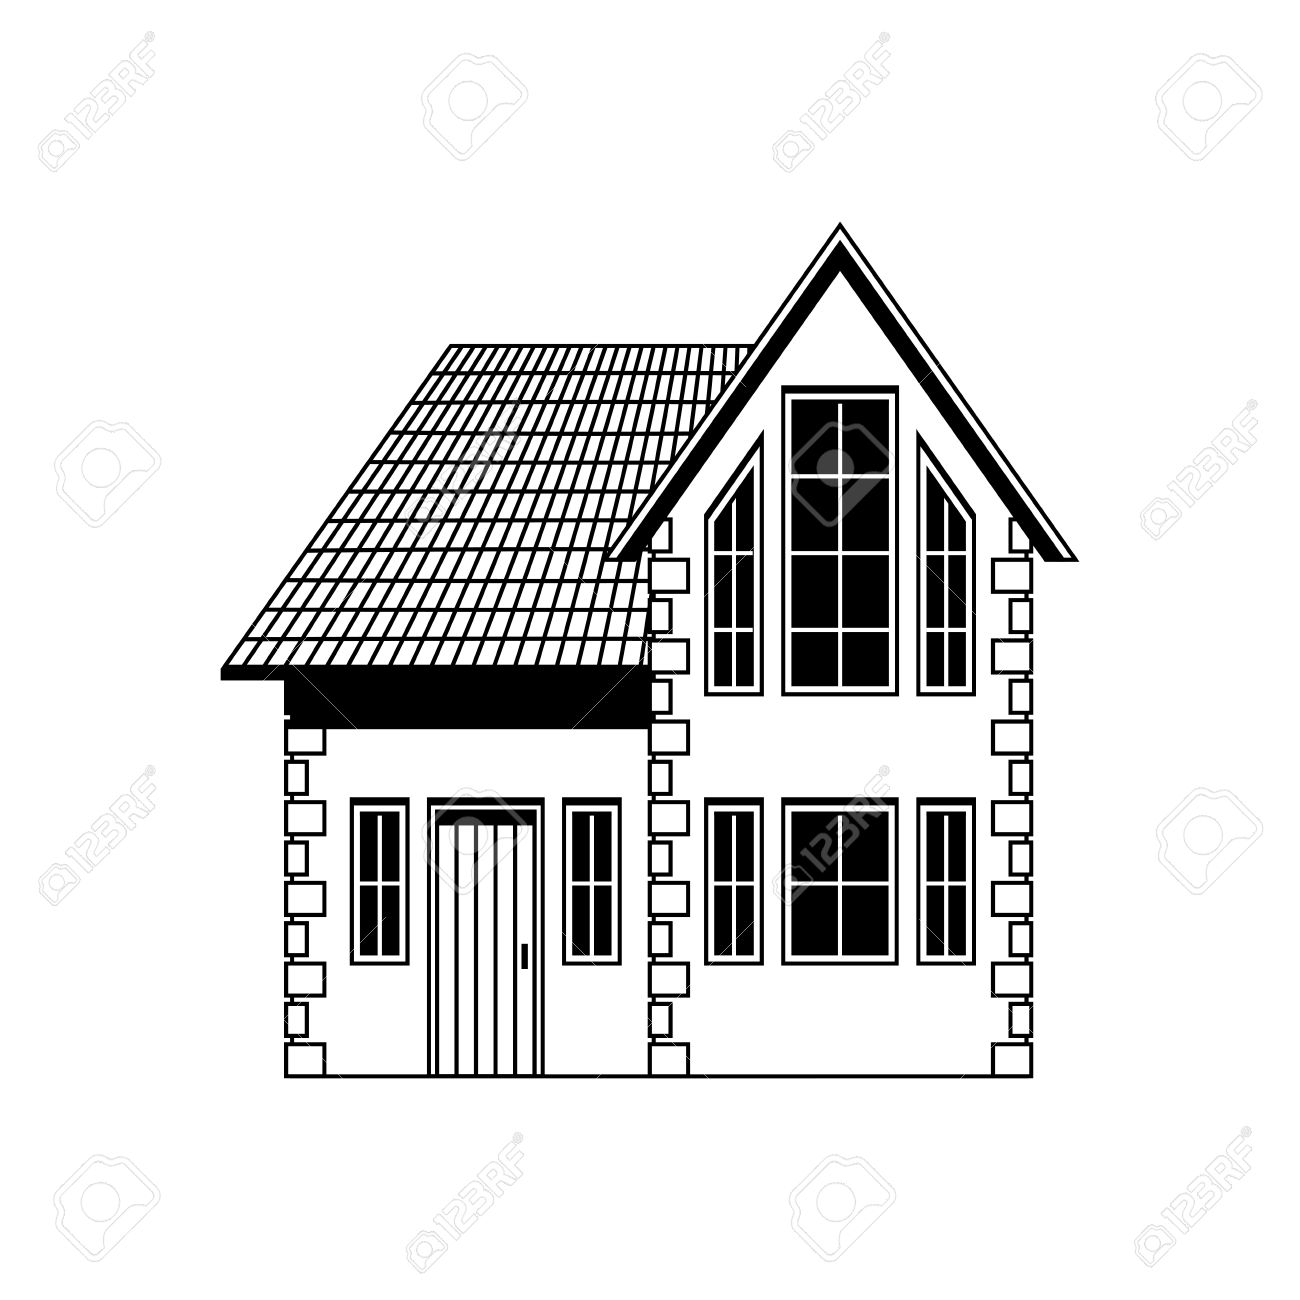 home  freehand drawing  icon black and white illustration Stock Vector - 14527931